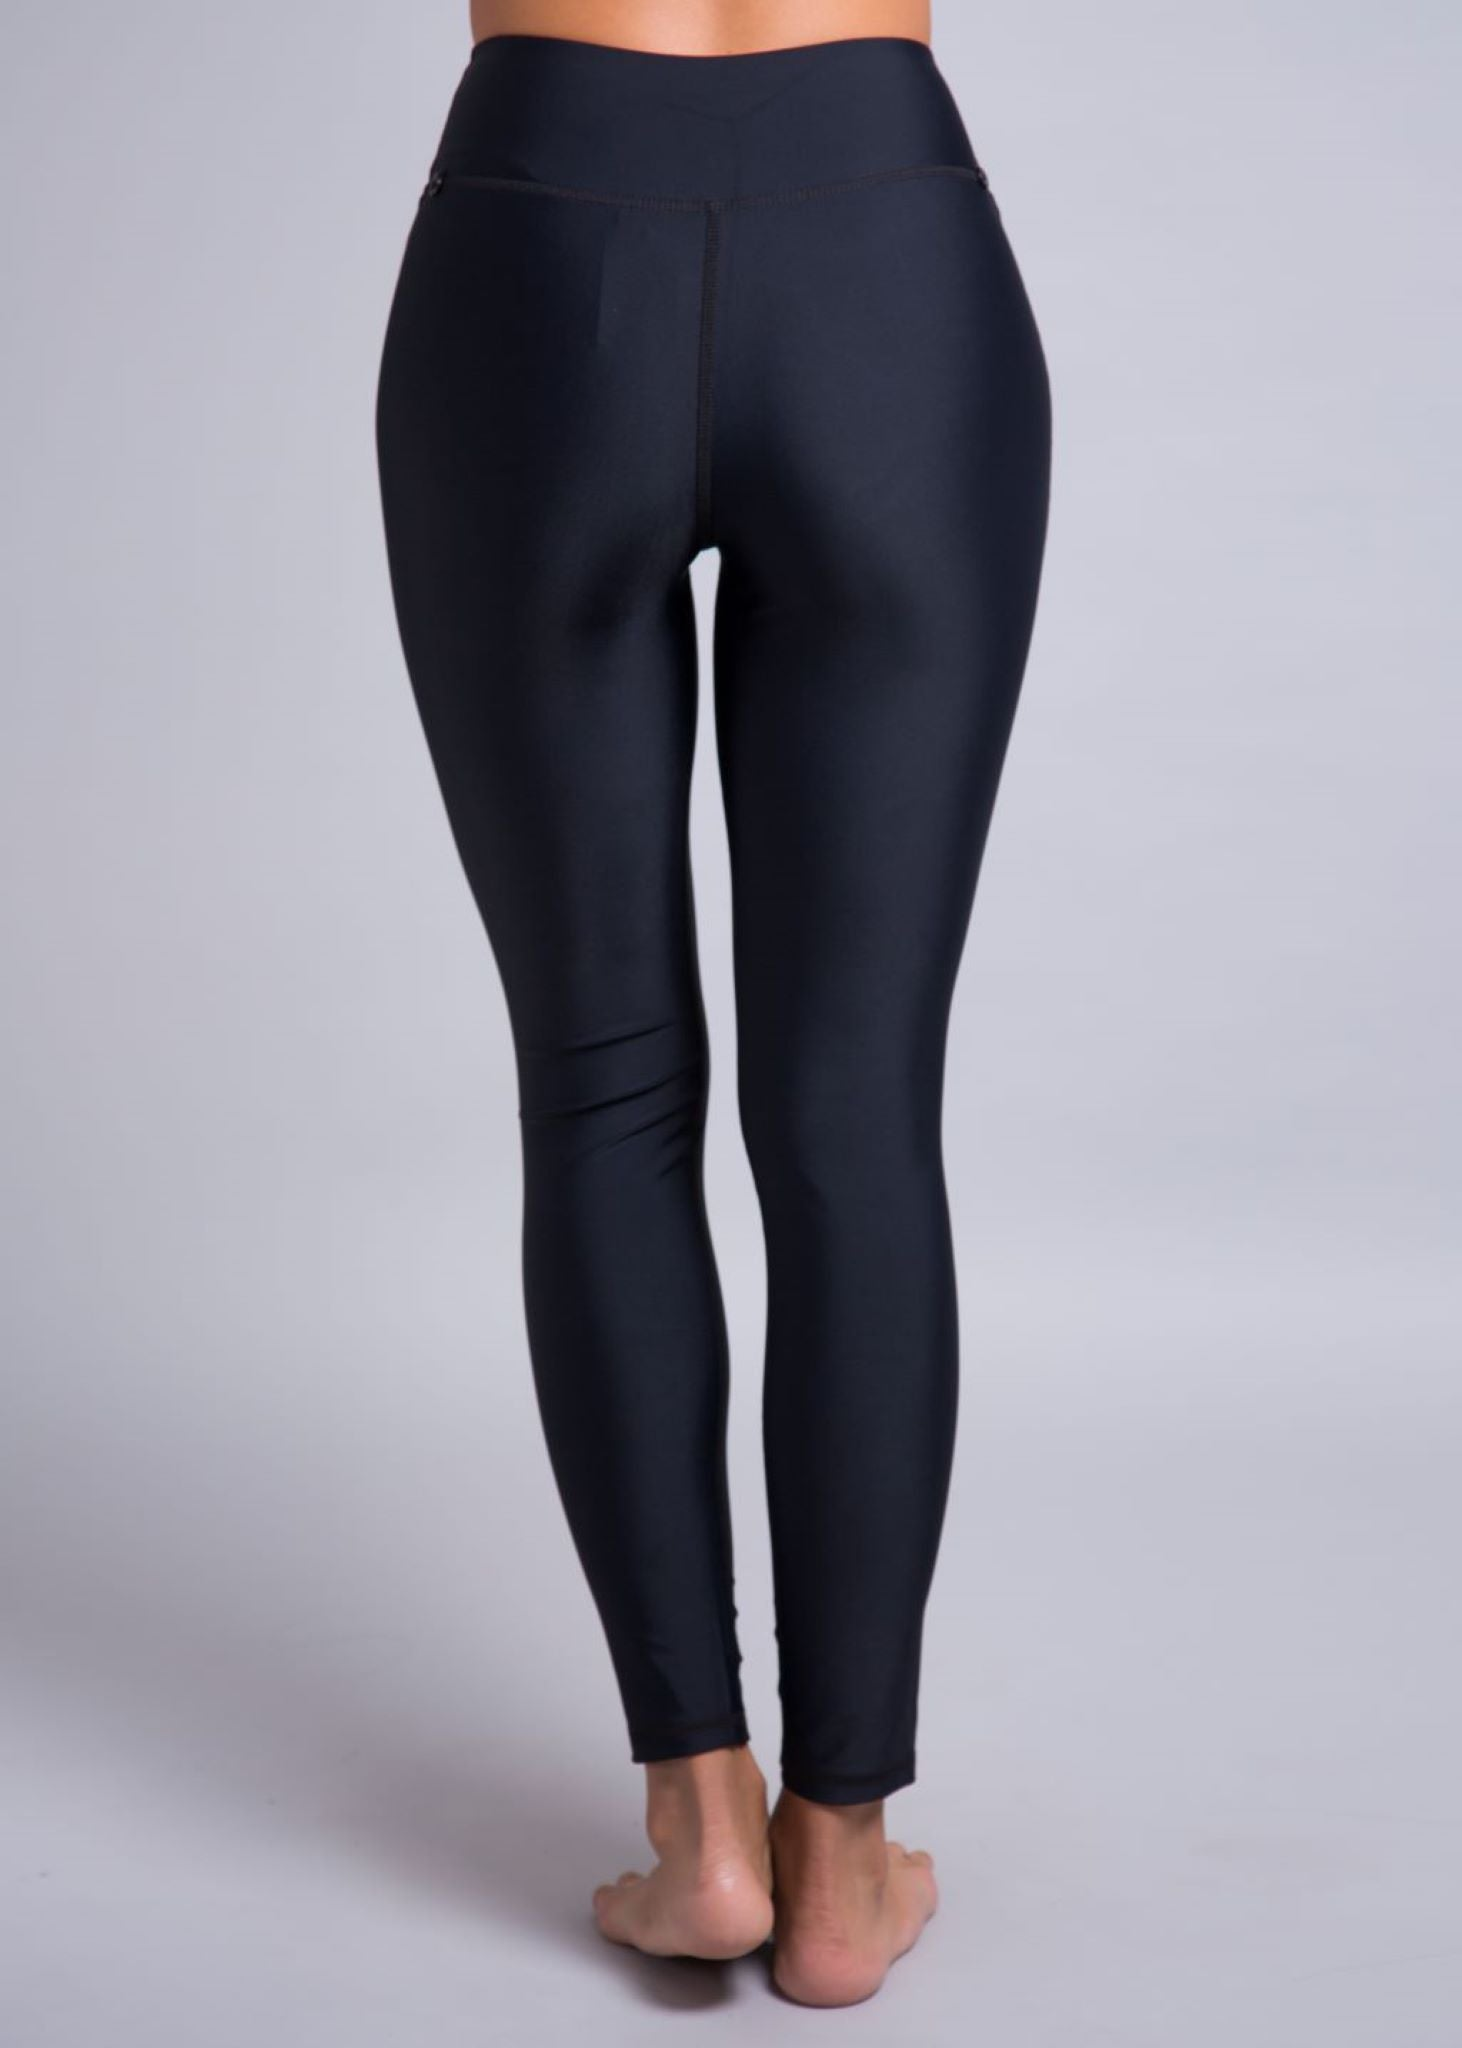 Lanuuk swim tights black